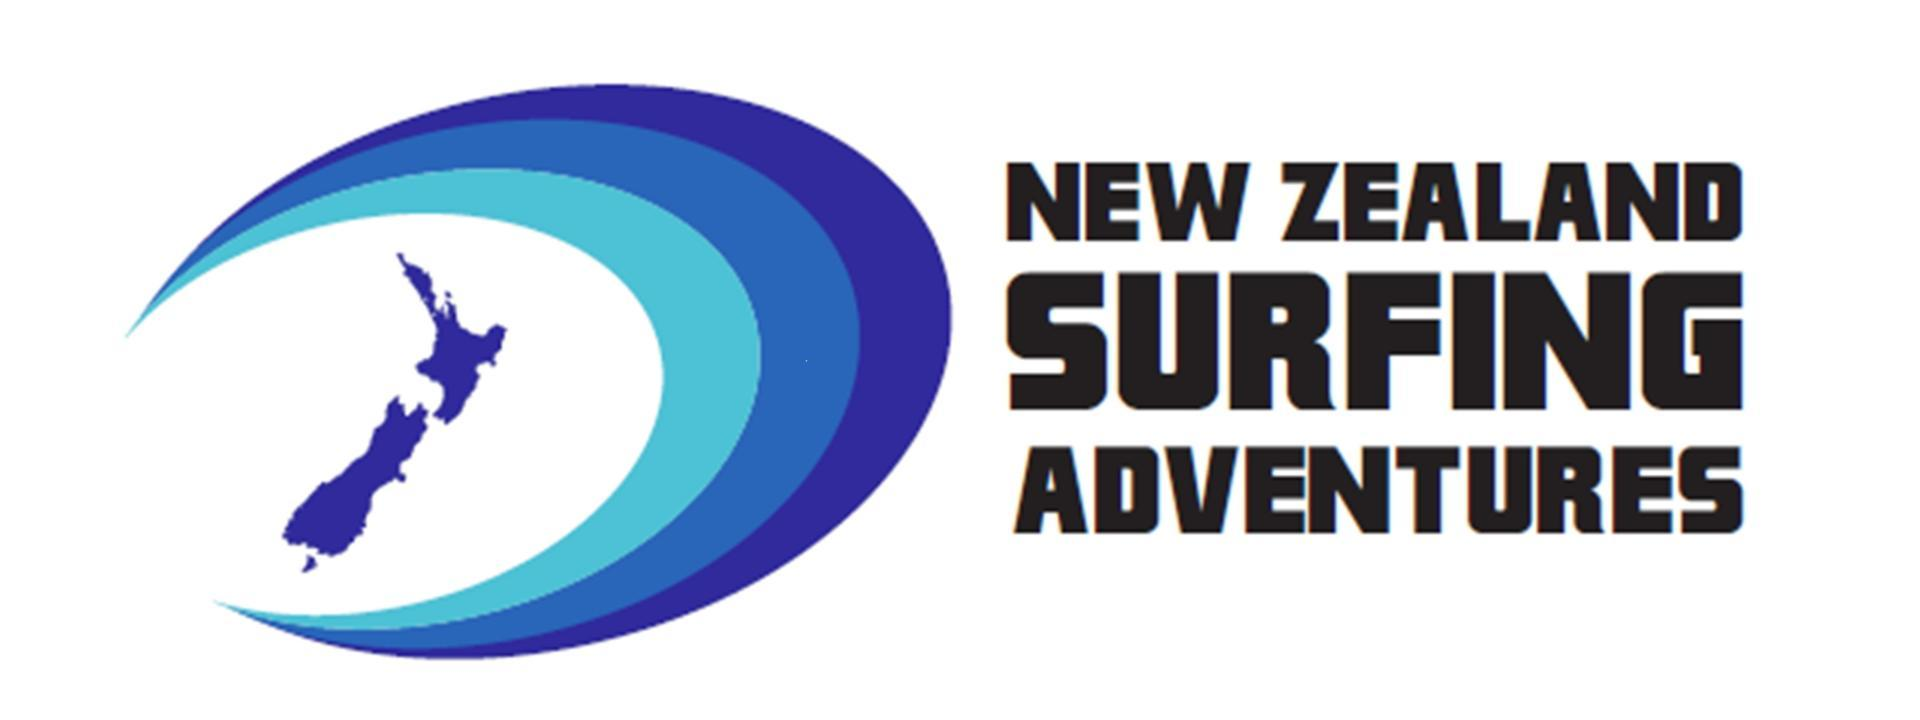 Logo: New Zealand surfing adventures